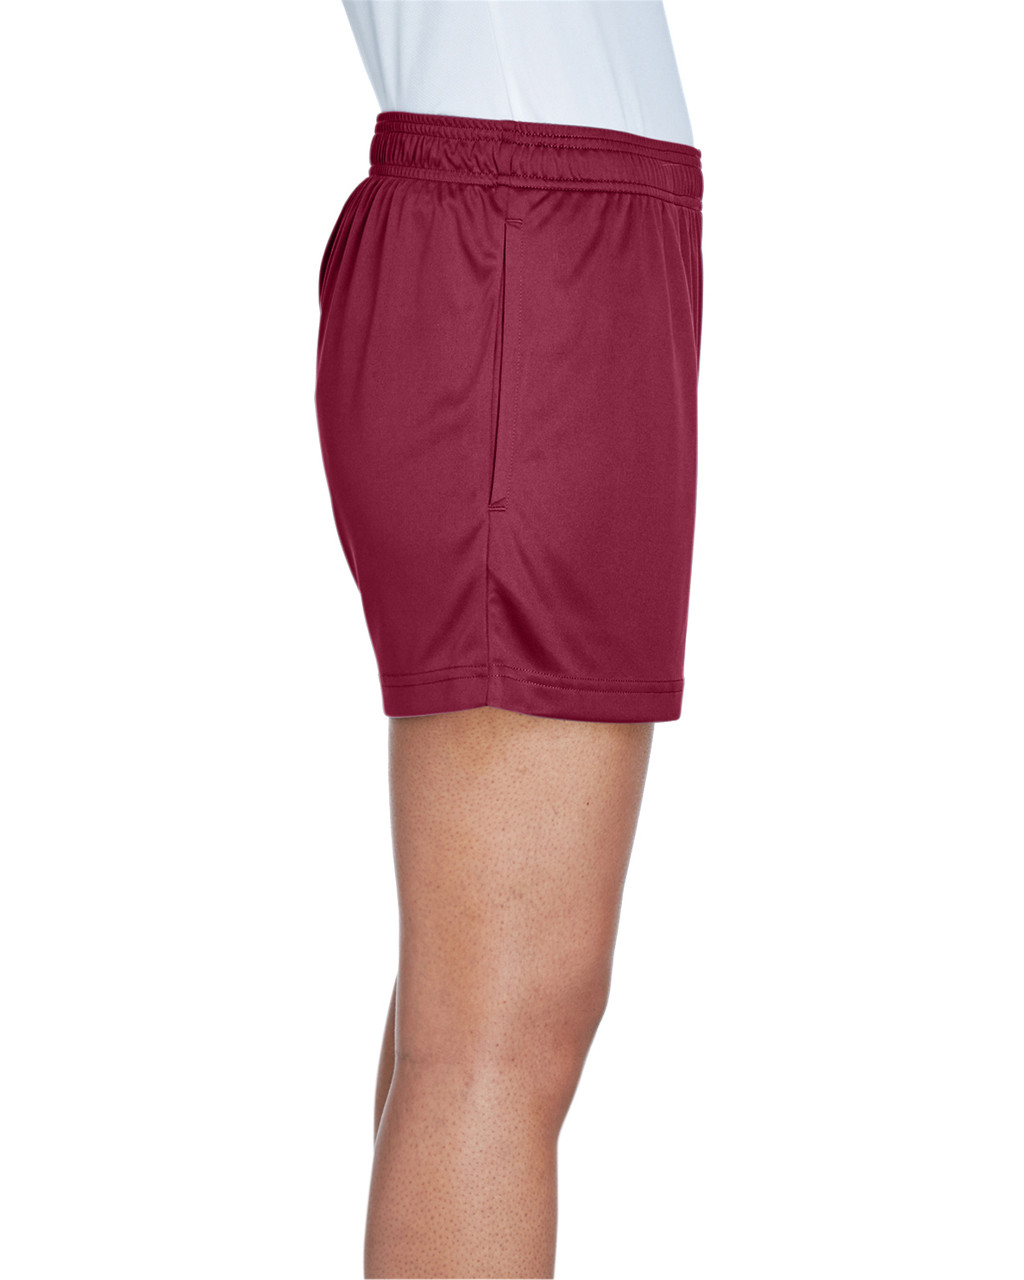 Sport Maroon - Side, TT11SHW Team 365 Ladies' Zone Performance Short | T-shirt.ca